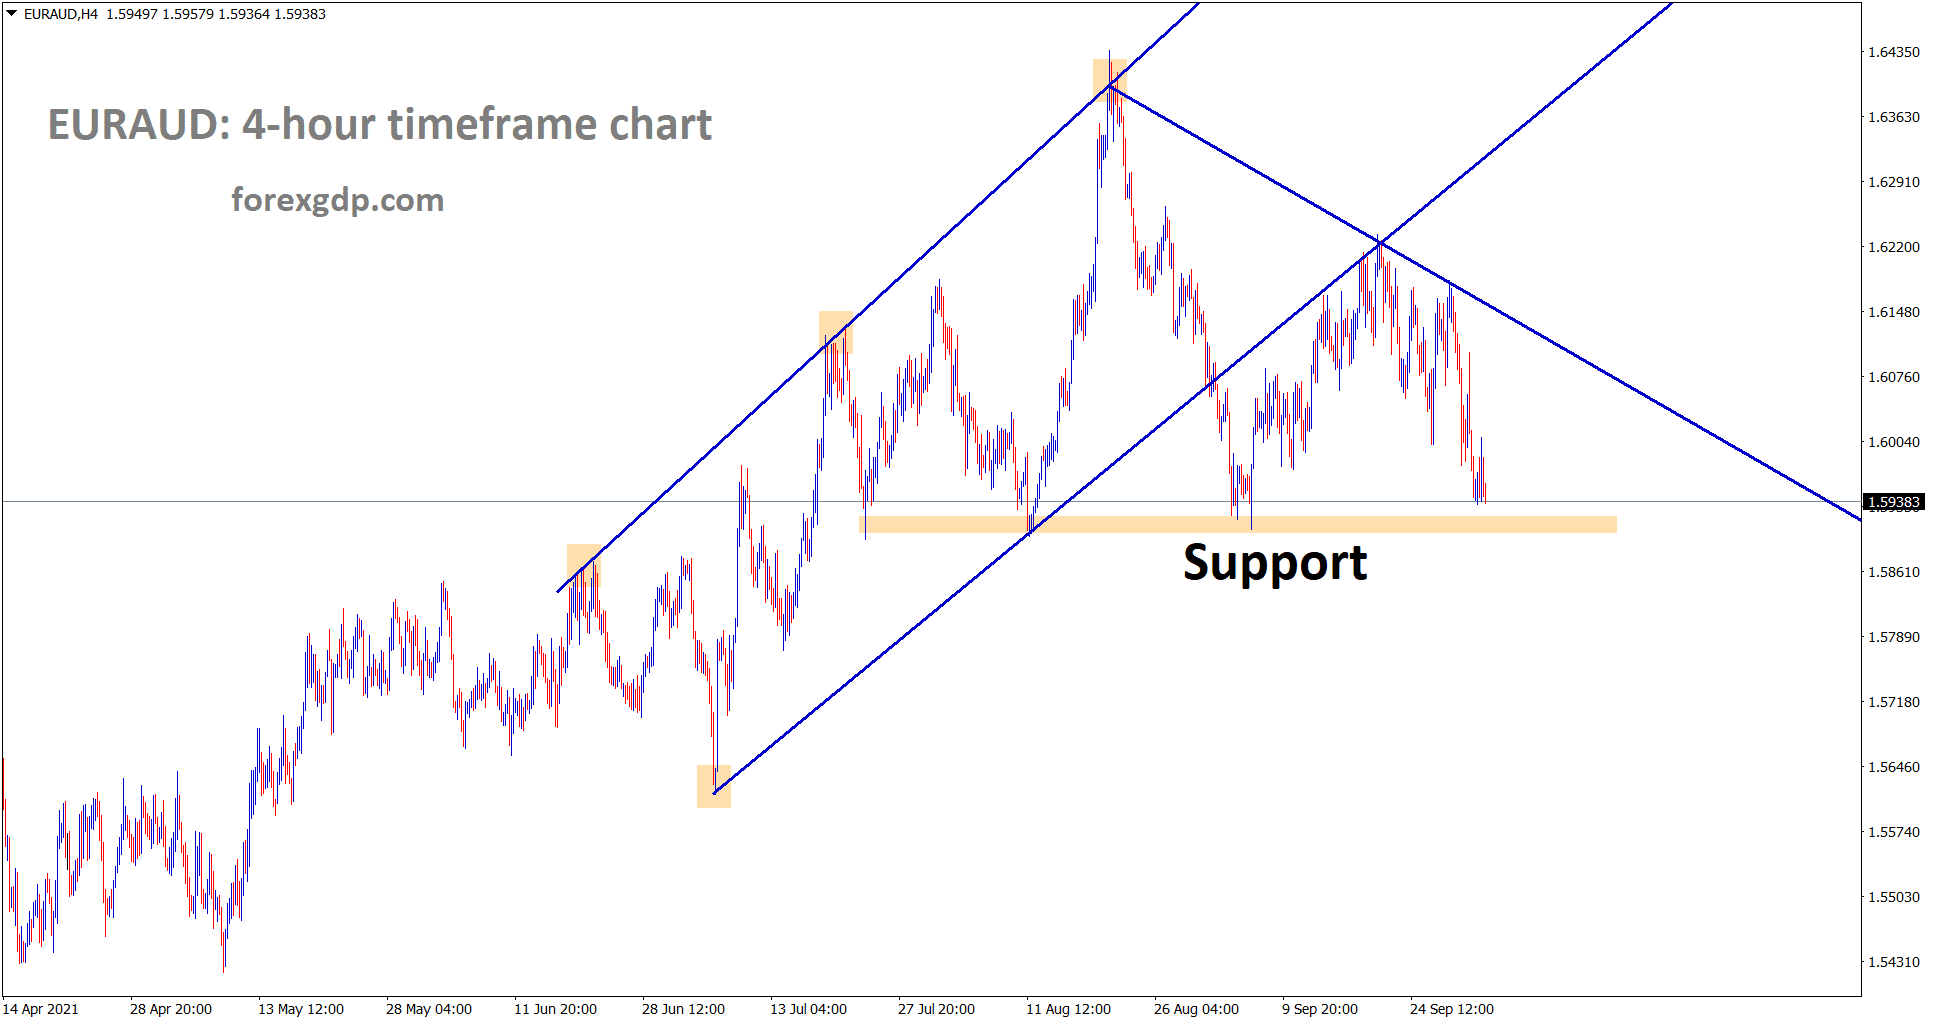 EURAUD is going to reach the horizontal support area wait for breakout or reverssal